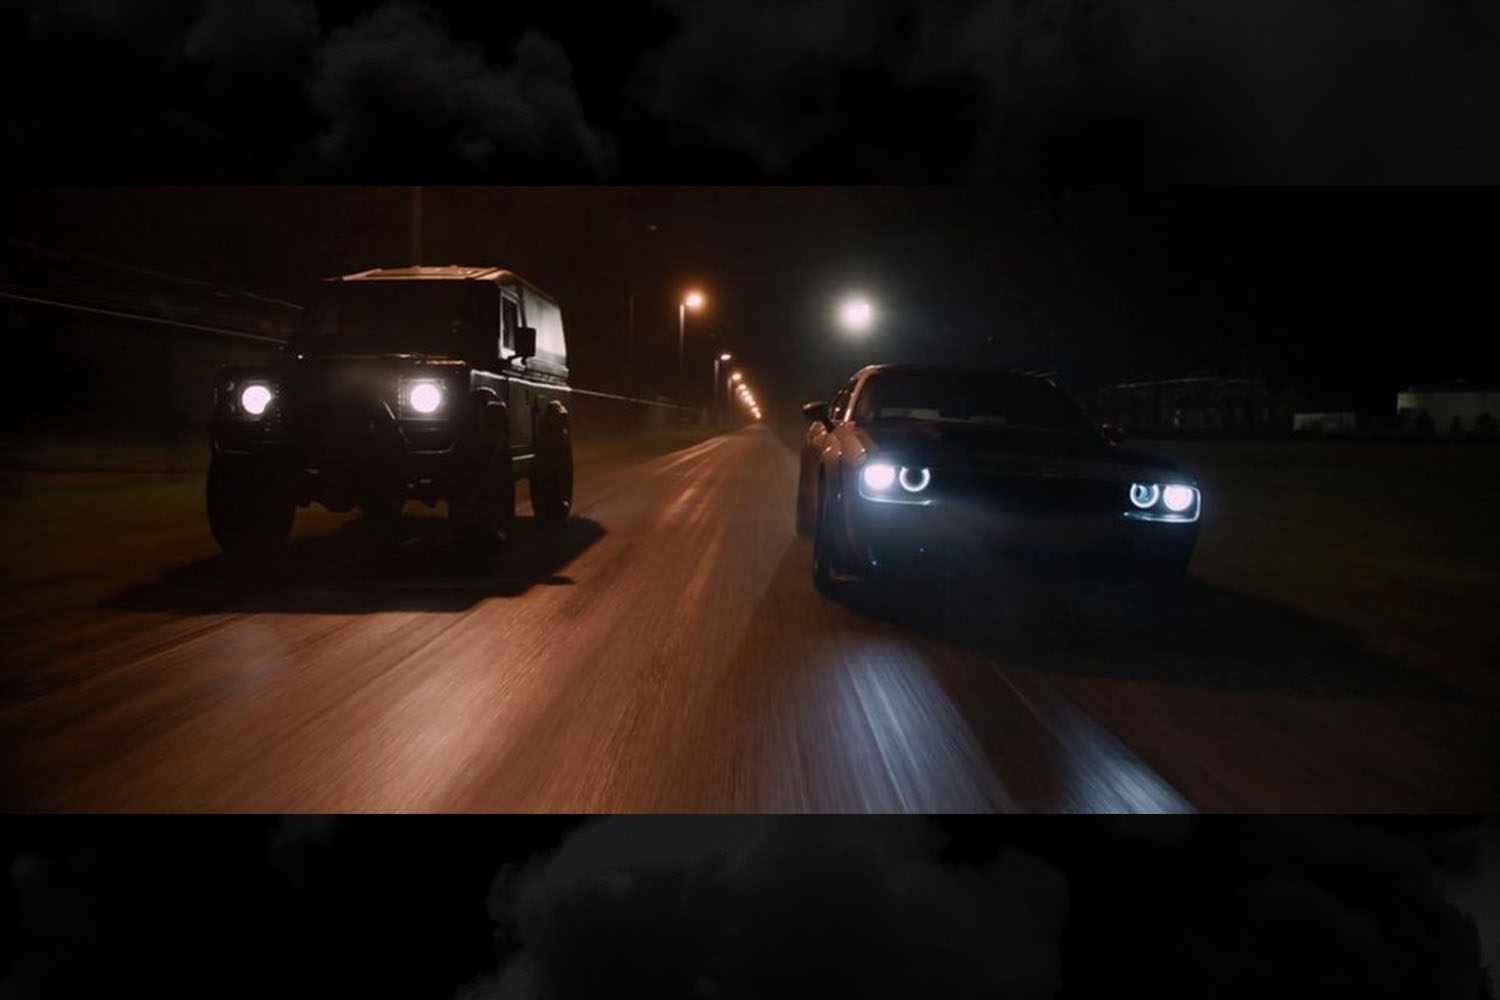 """Luke Hobbs played by Dwayne """"The Rock"""" Johnson driving a Land Rover Defender at night in a scene from The Fate of the Furious"""